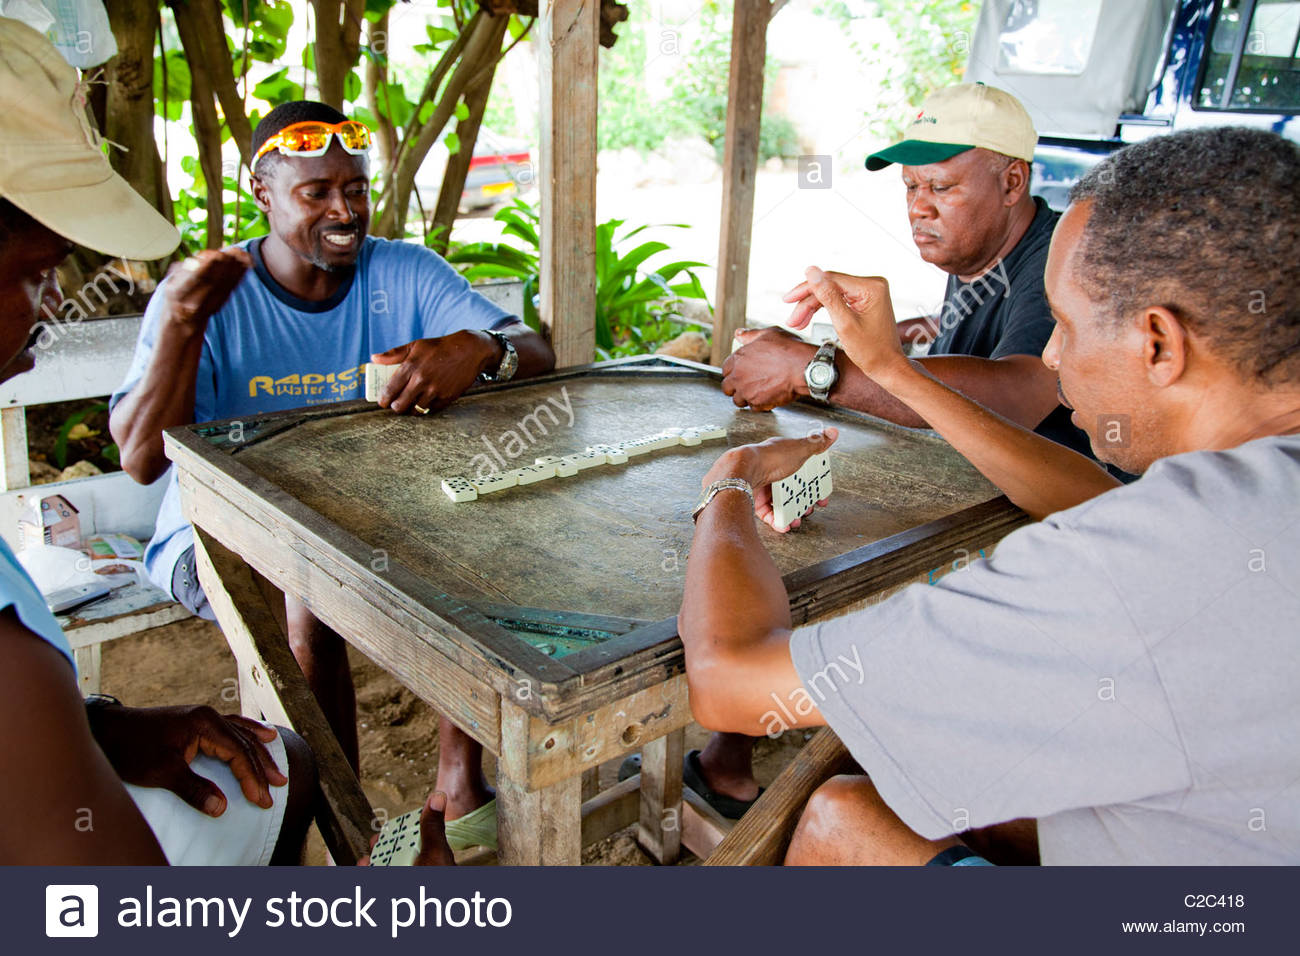 Bajan devotees of dominoes while away entire afternoons playing. - Stock Image